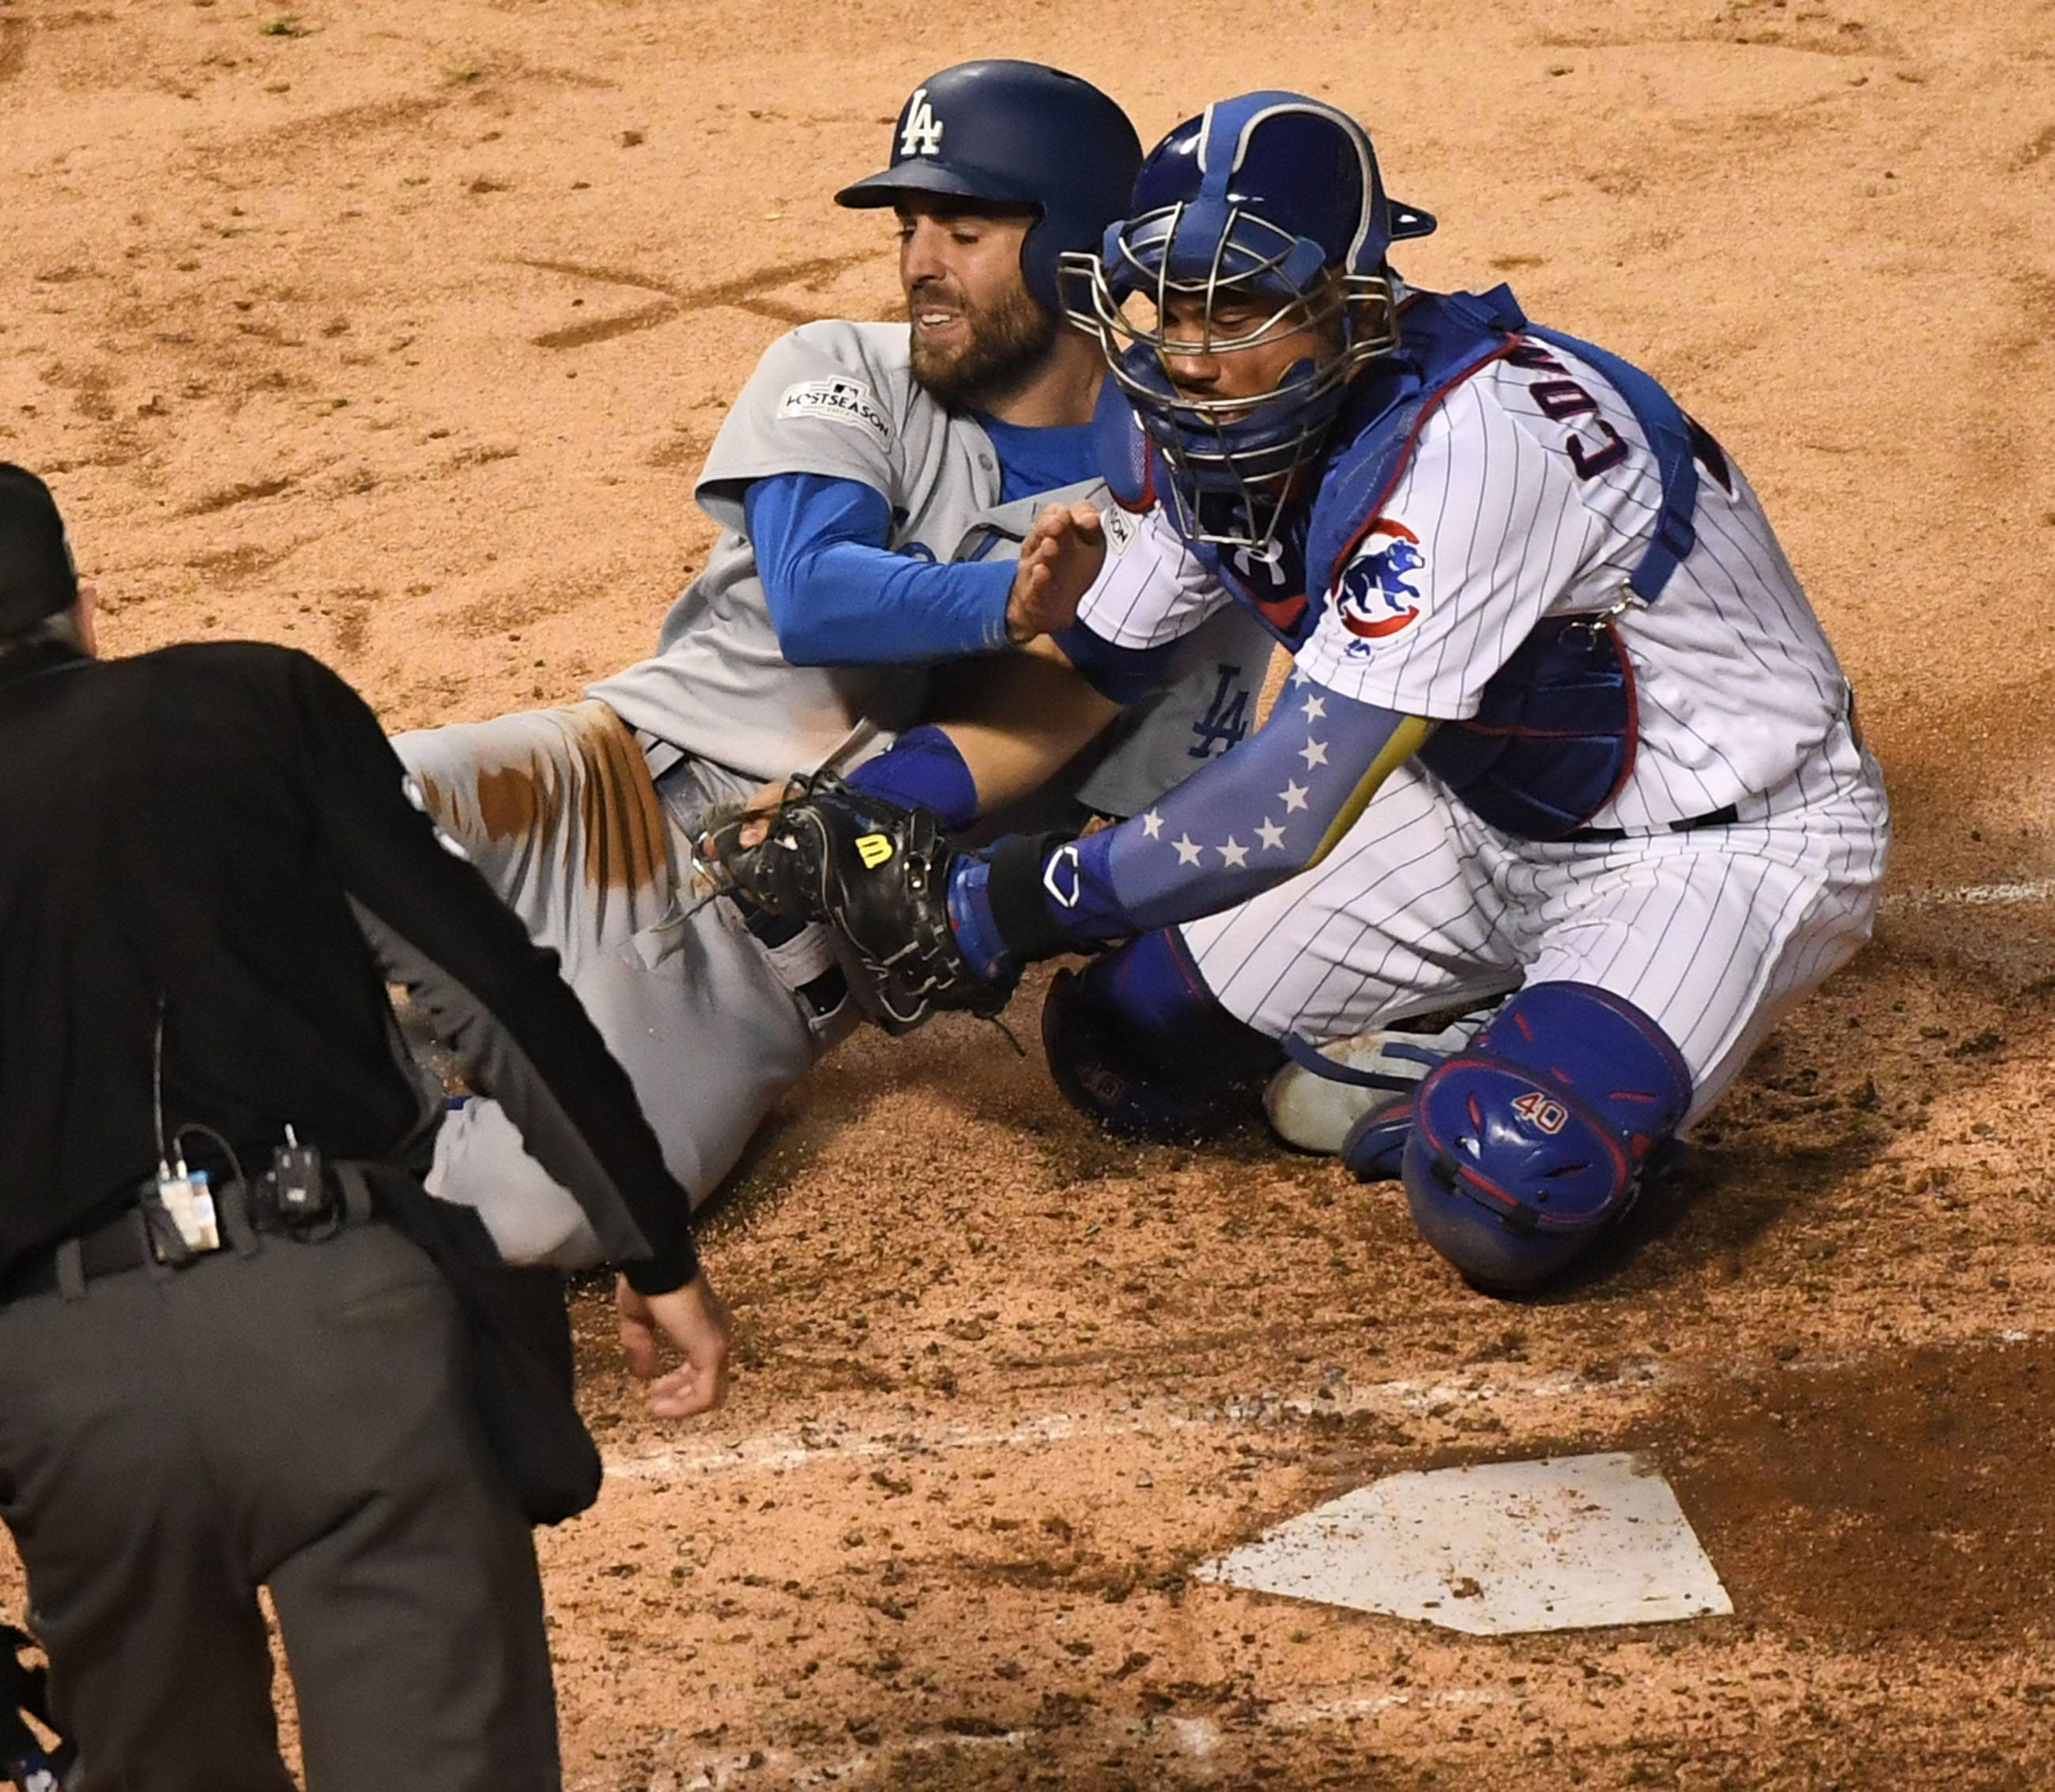 Chicago Cubs catcher Willson Contreras (40) tags out Los Angeles Dodgers center fielder Chris Taylor (3) in the fifth inning during Game 3 of the National League Championship Series, Oct, 17 2017, at Wrigley Field in Chicago.